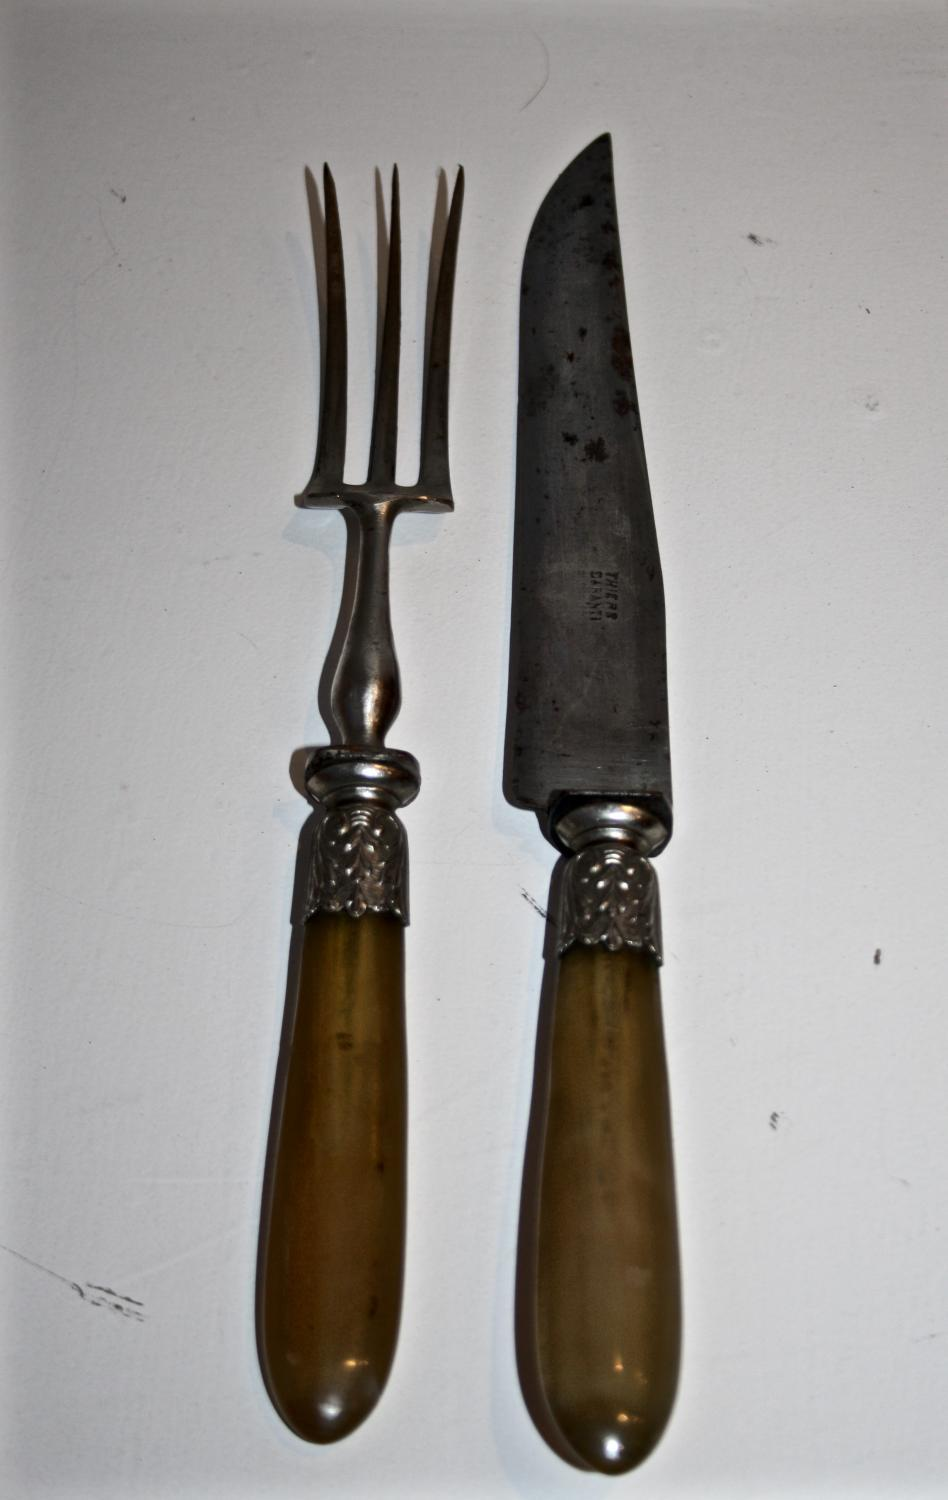 French Carving Knife and Fork